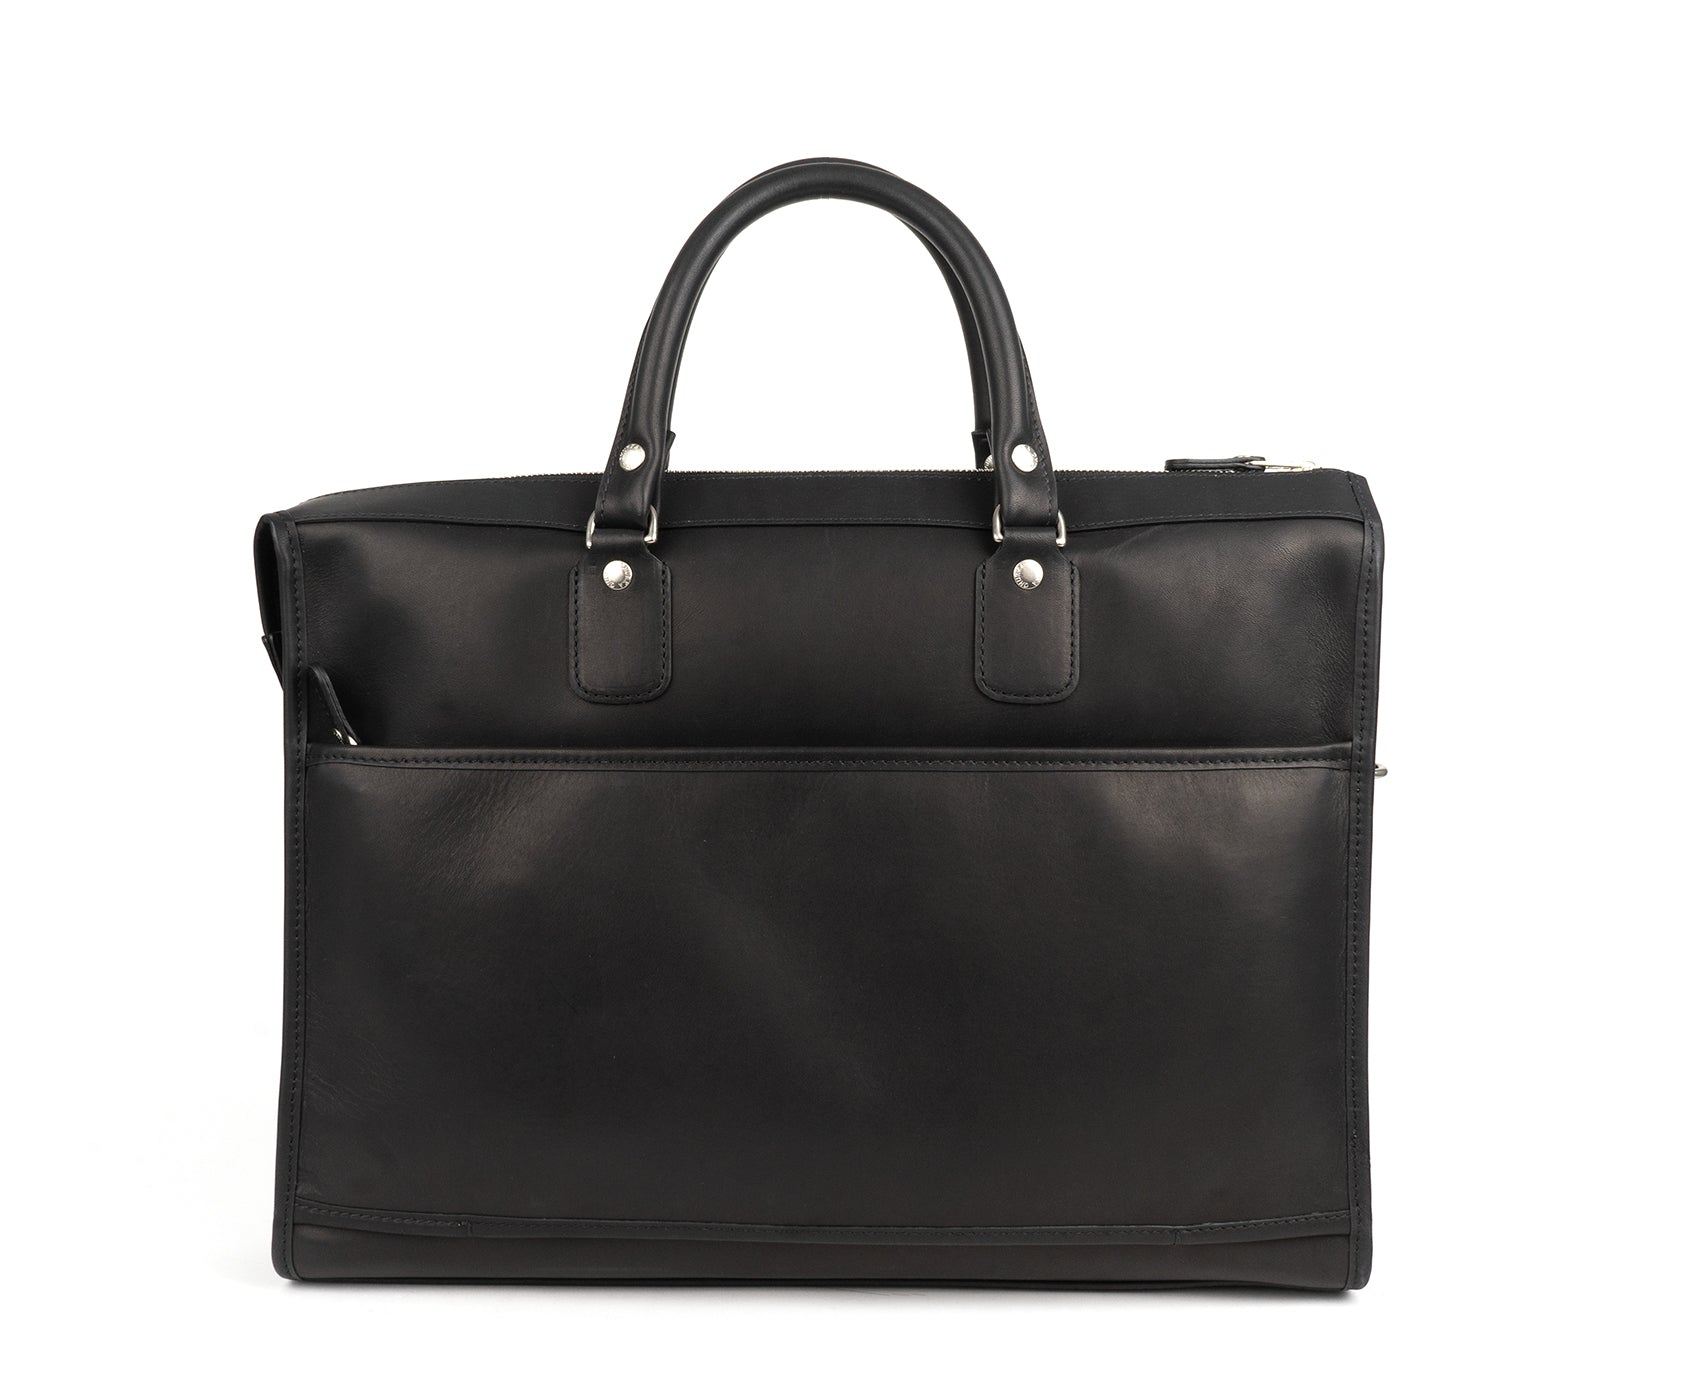 Vestry No. 152 | Black Leather